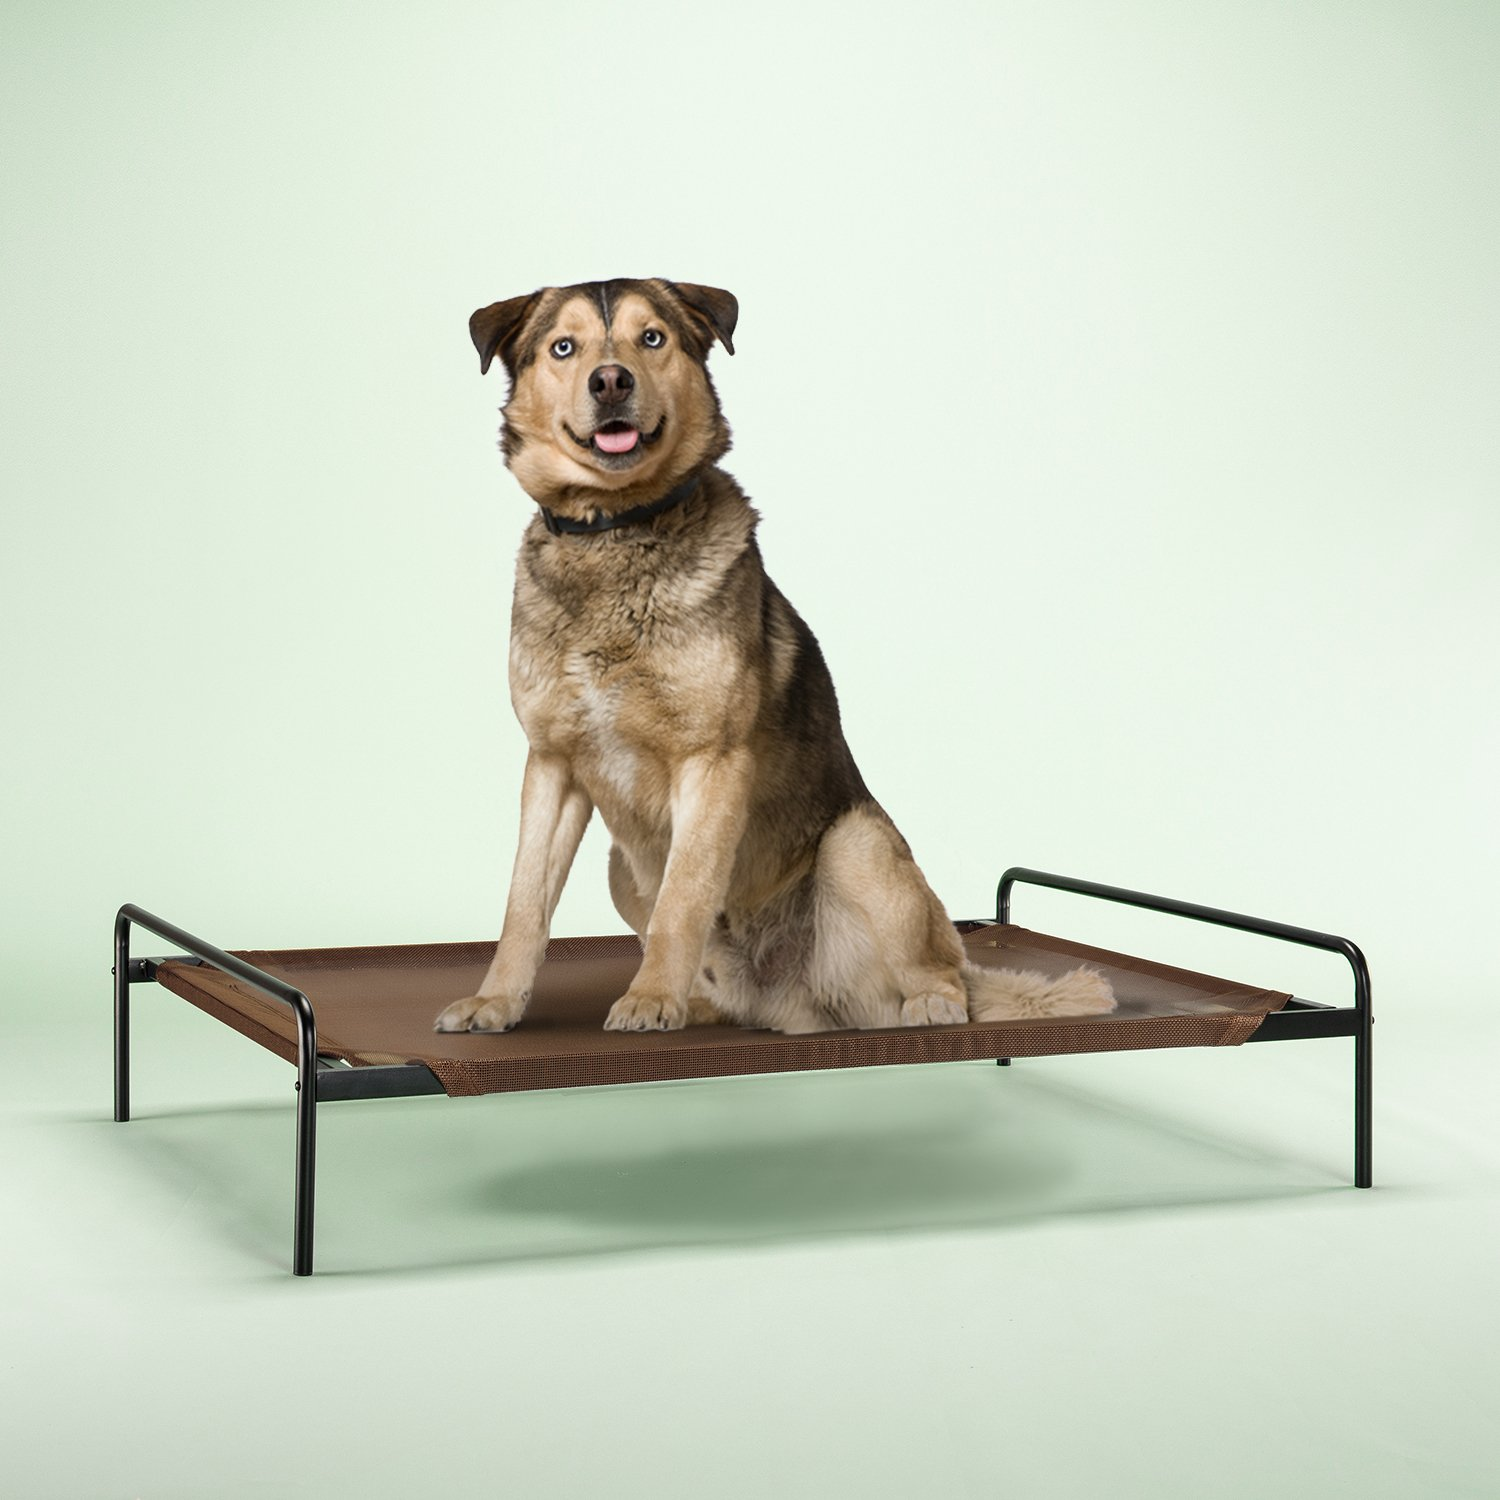 Romilton – The Charlie Premium Orthopedic Memory Foam Dog Bed. Water Resistant Cover Is Removable and Washable.